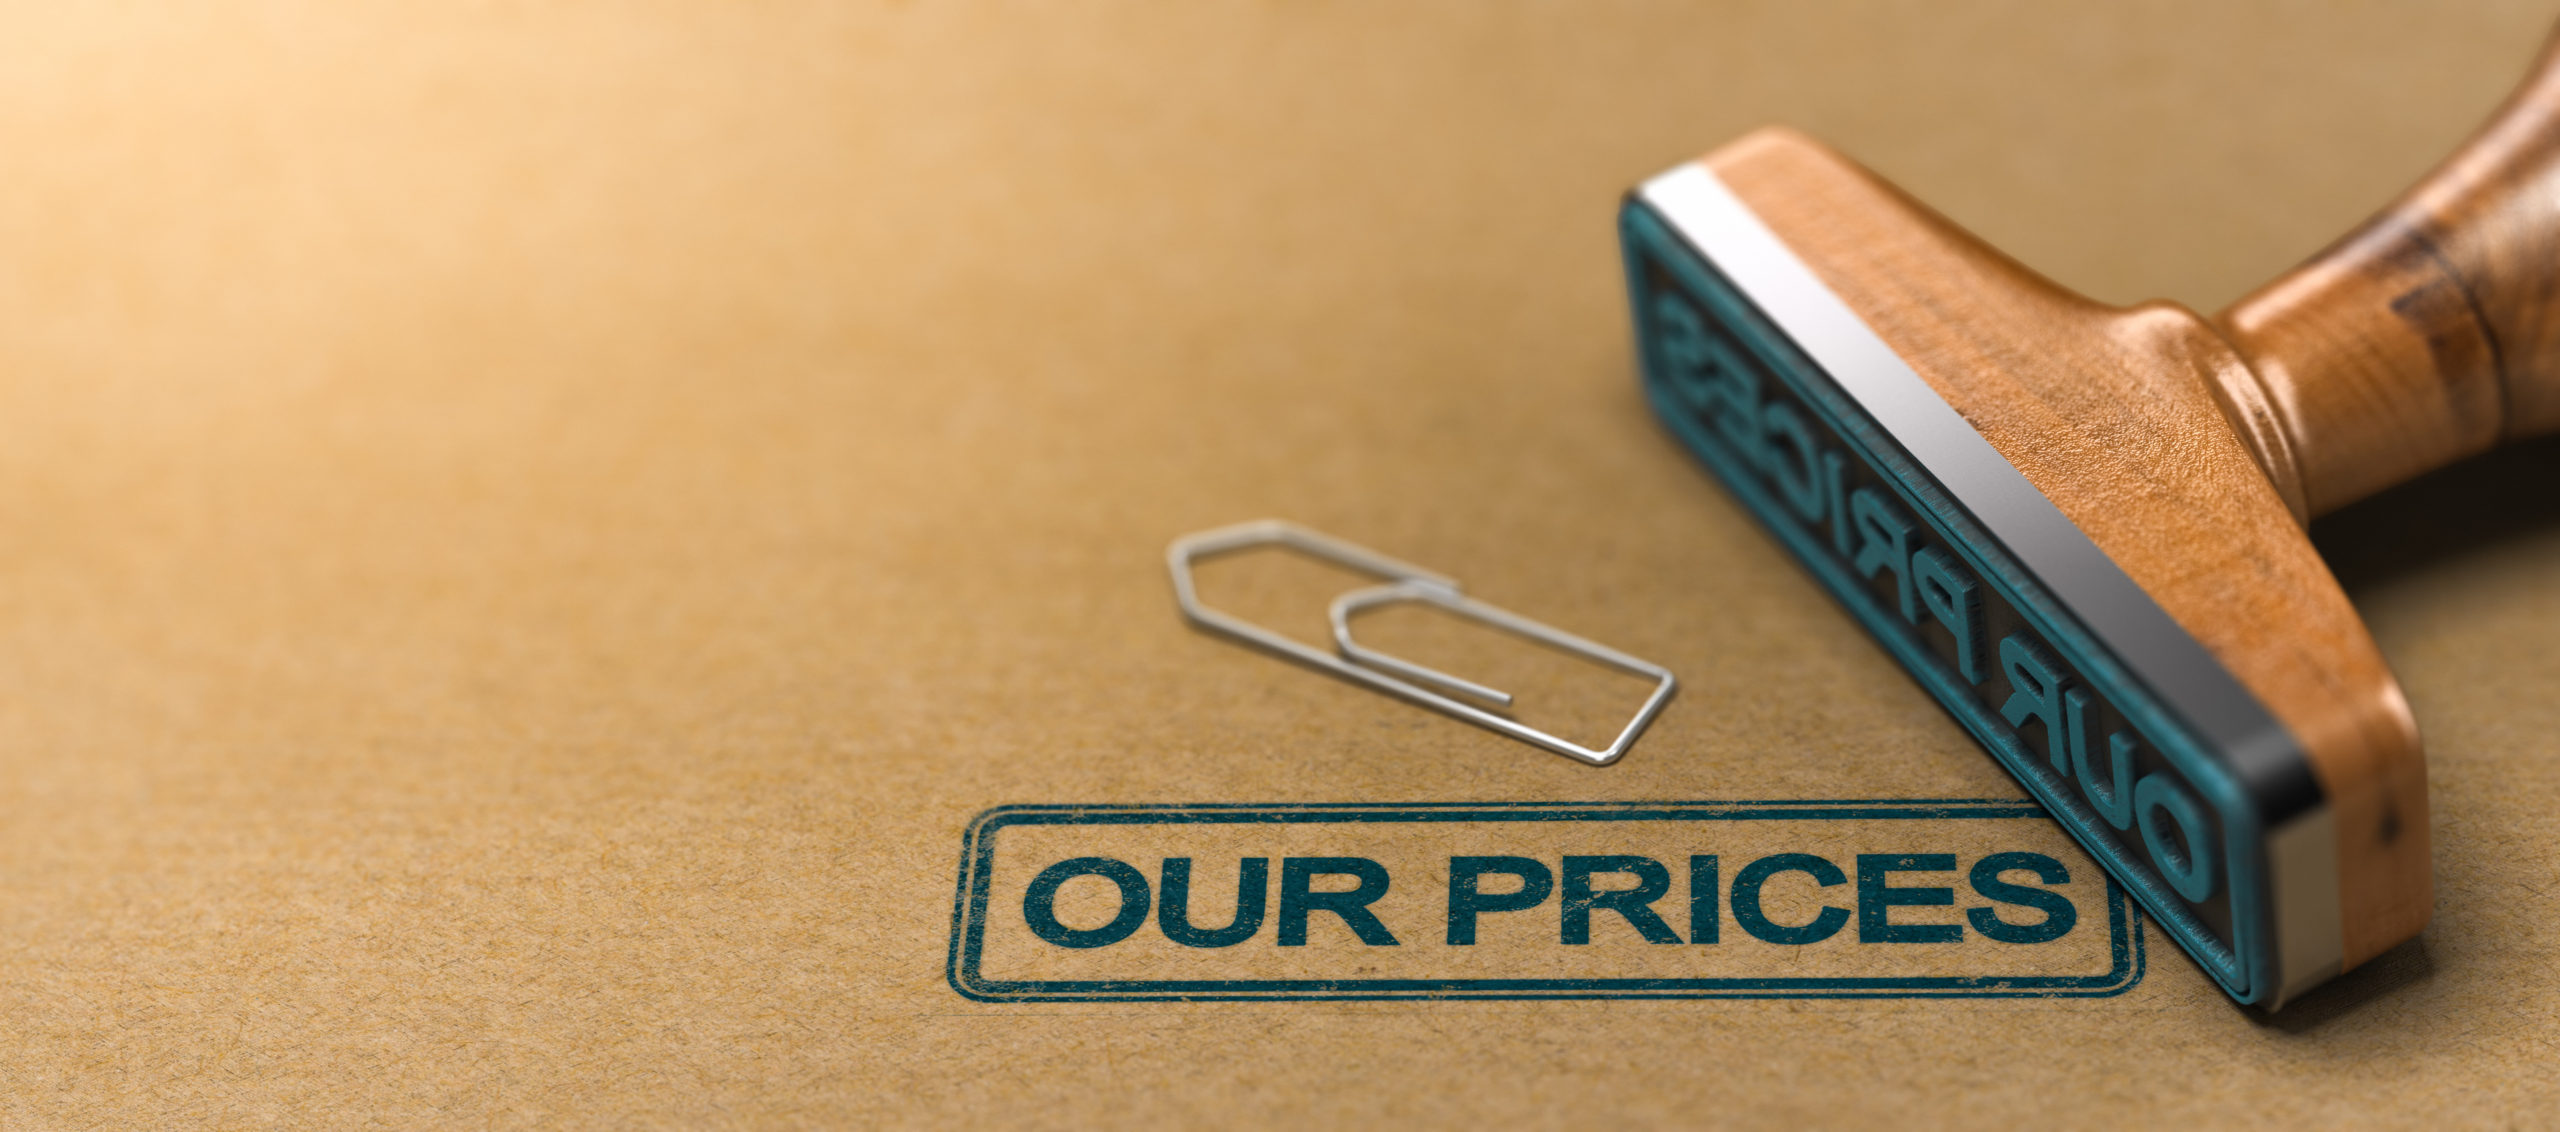 https://www.dotcomsolutiononline.com/wp-content/uploads/2021/04/our-prices-pricing-and-tariff-conditions-PVM4P2R-scaled.jpg